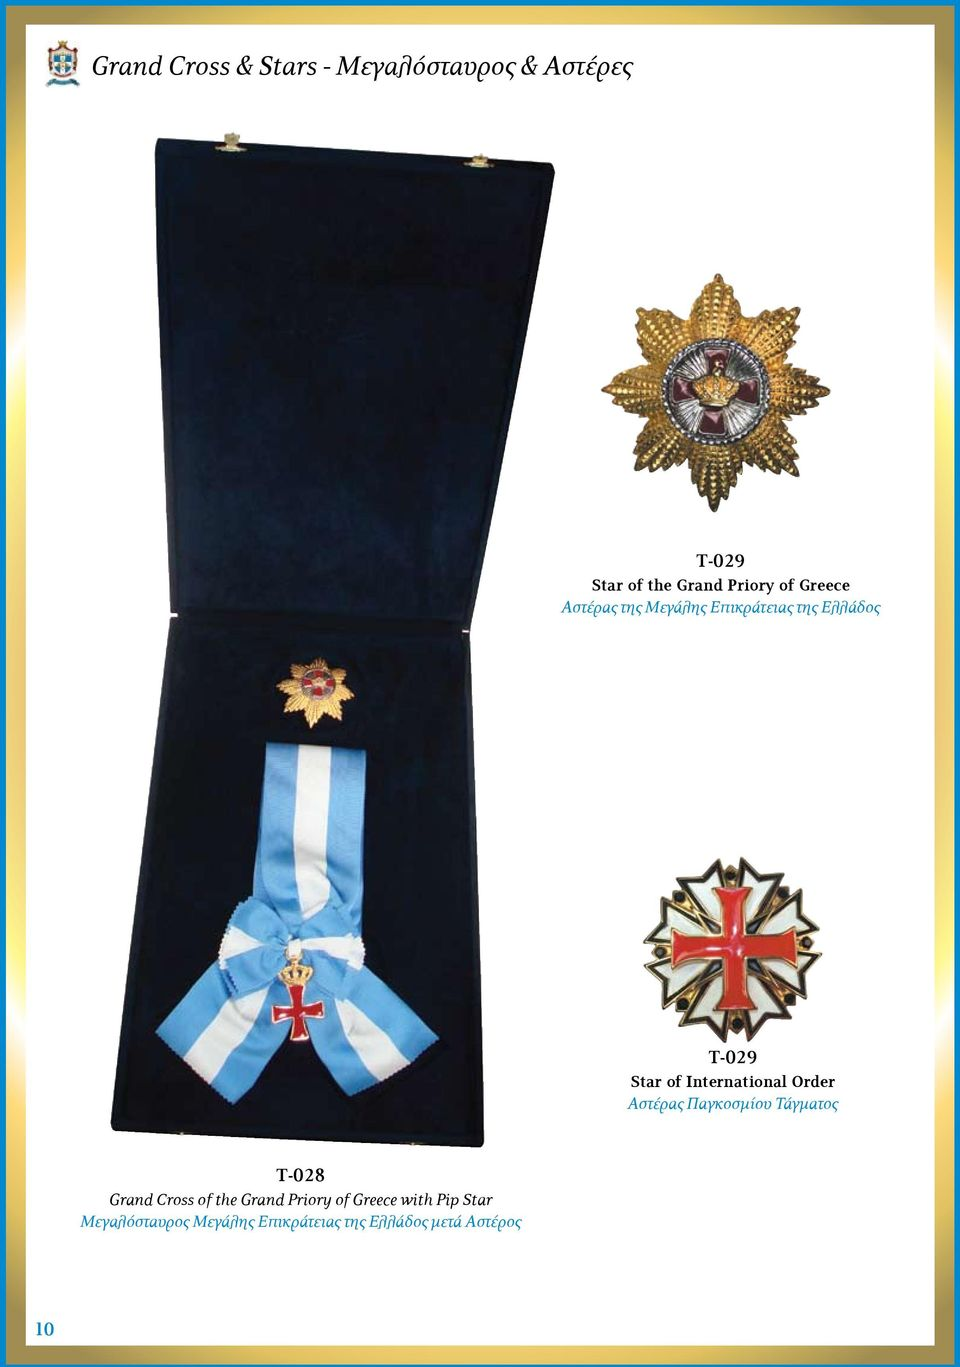 International Order Αστέρας Παγκοσμίου Τάγματος Τ-028 Grand Cross of the Grand